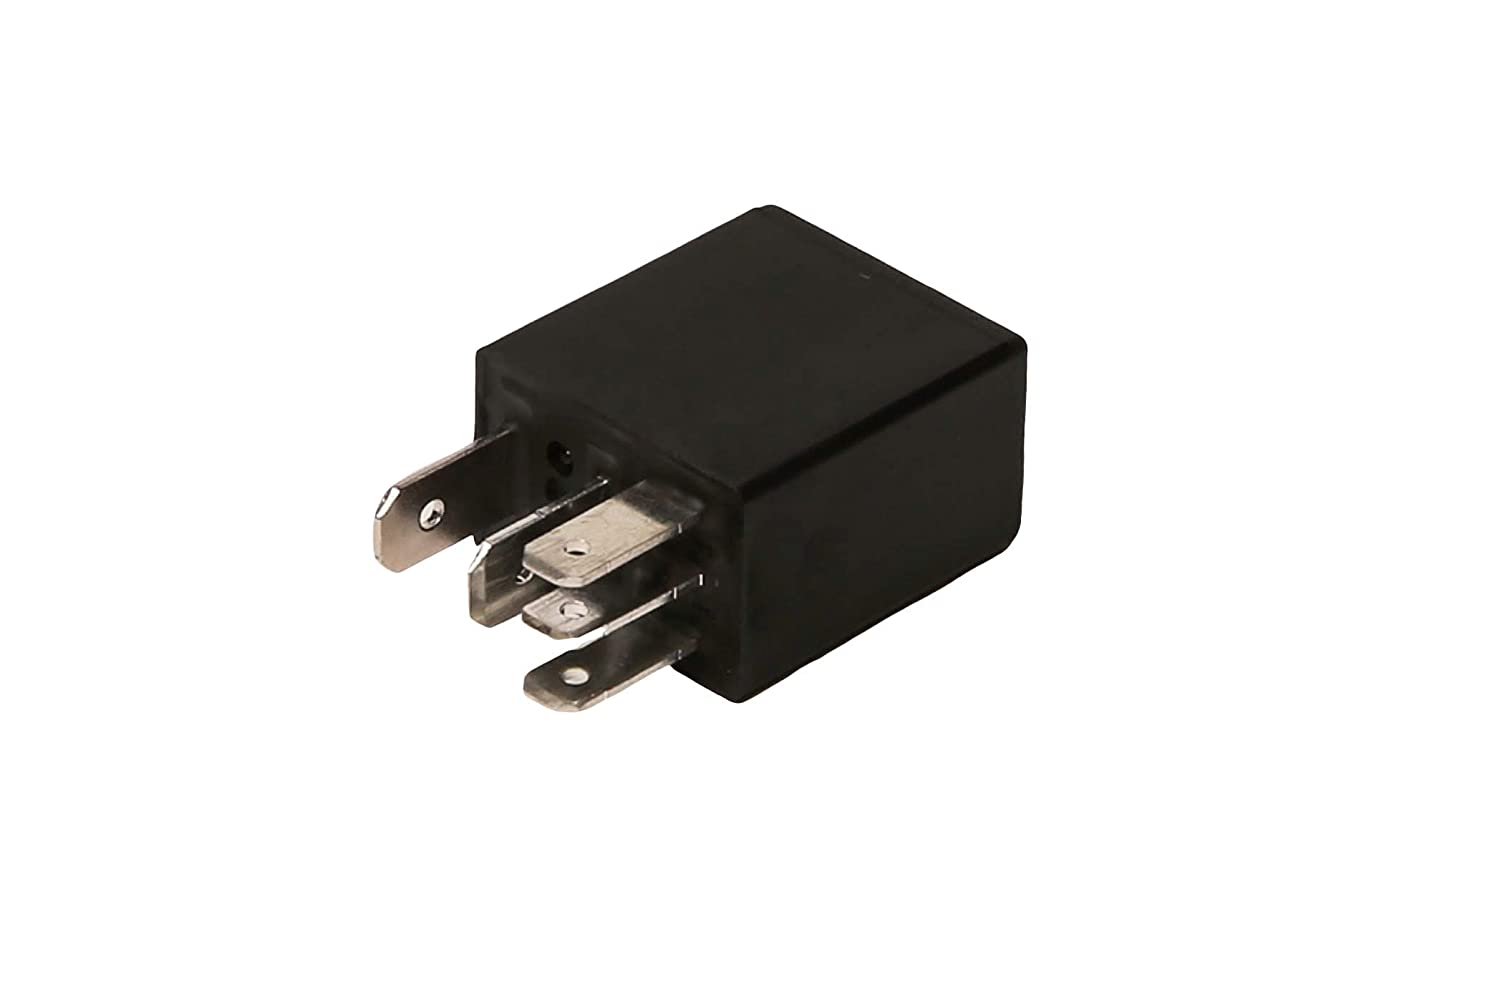 Direct Replacement Relay for Yamaha Part # 5DM-81950-00-00 - Sealed OEM Quality: Industrial & Scientific